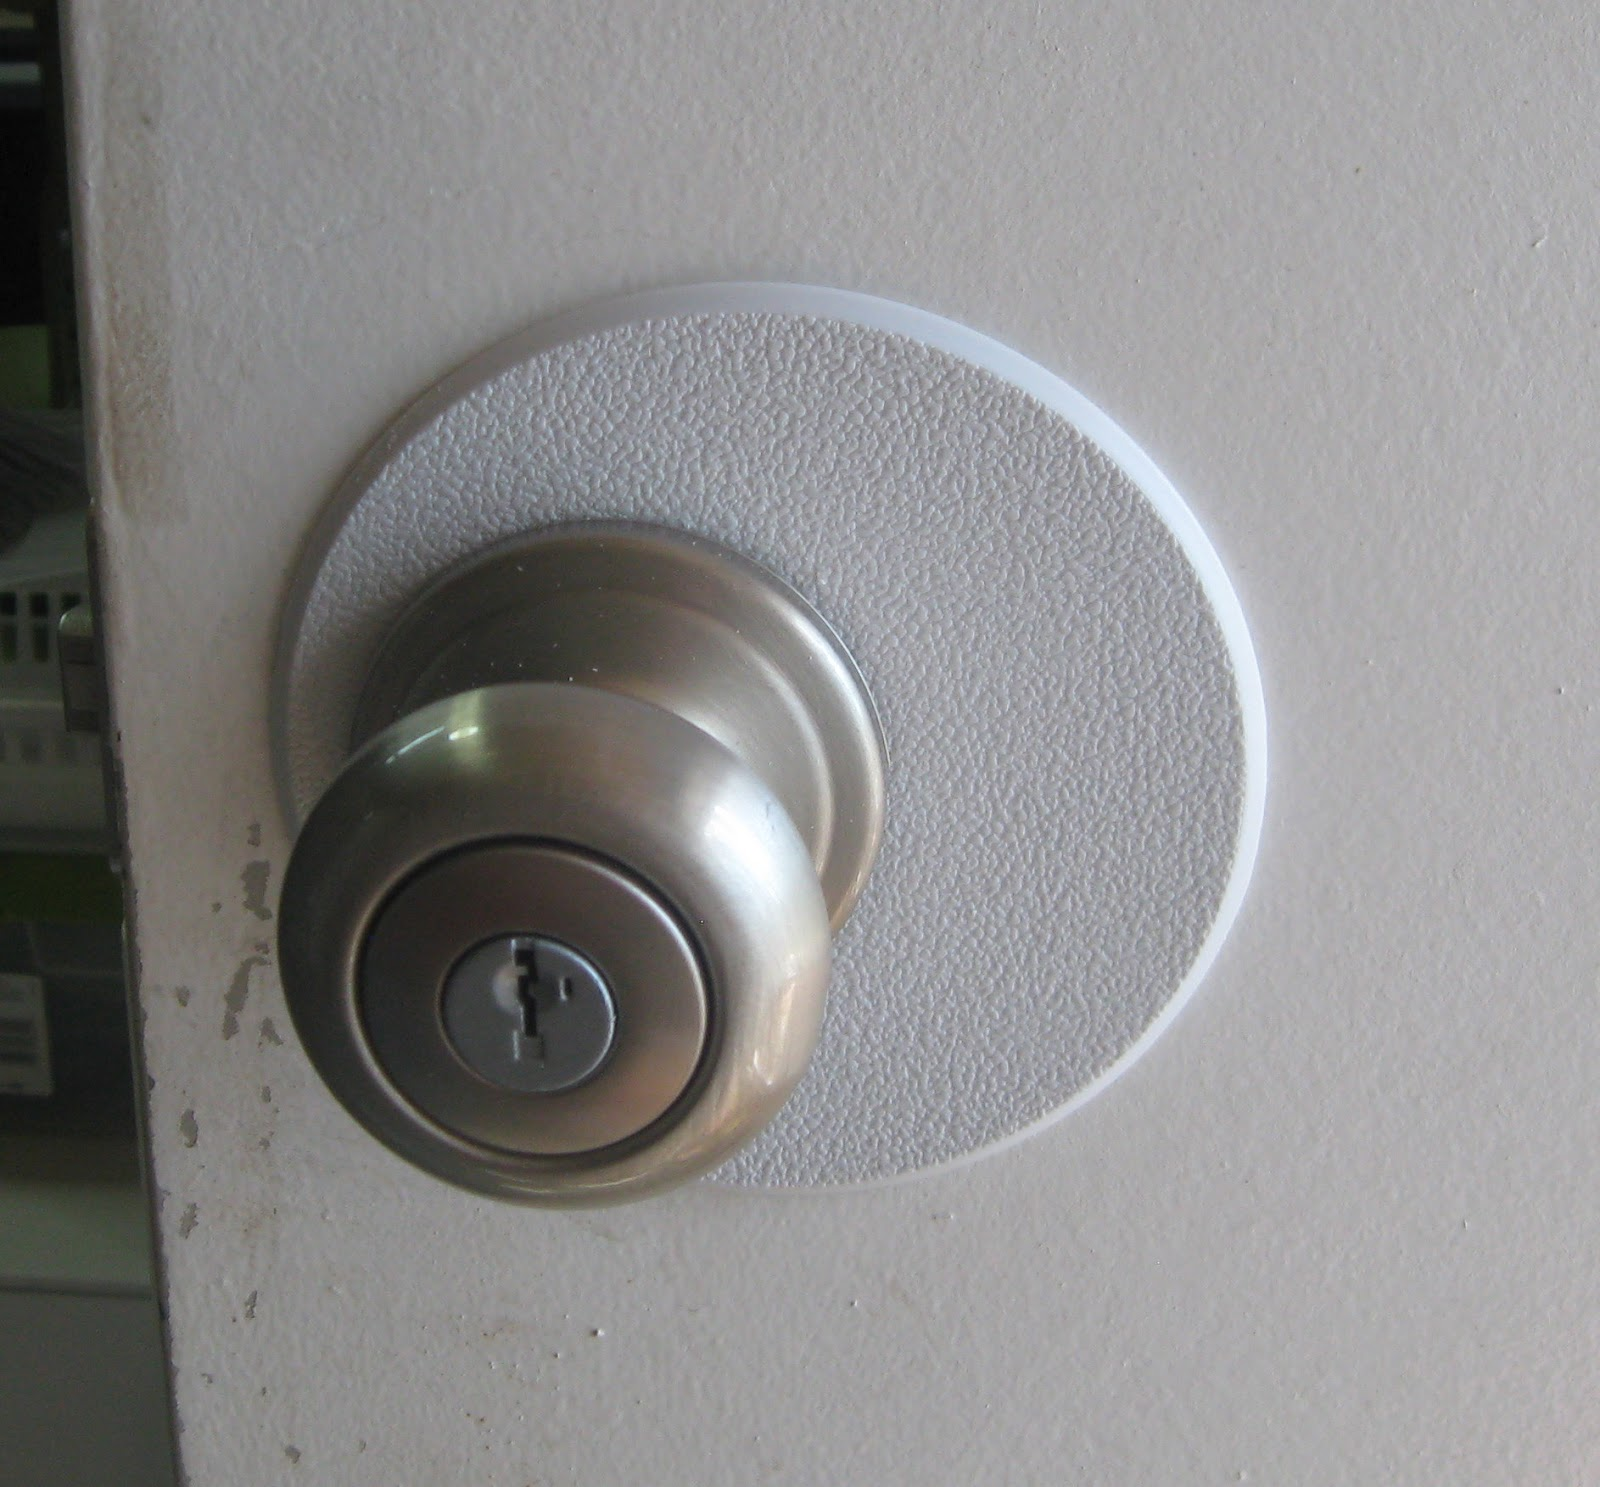 Exceptionnel New Door Knob With Nifty Patch Job!